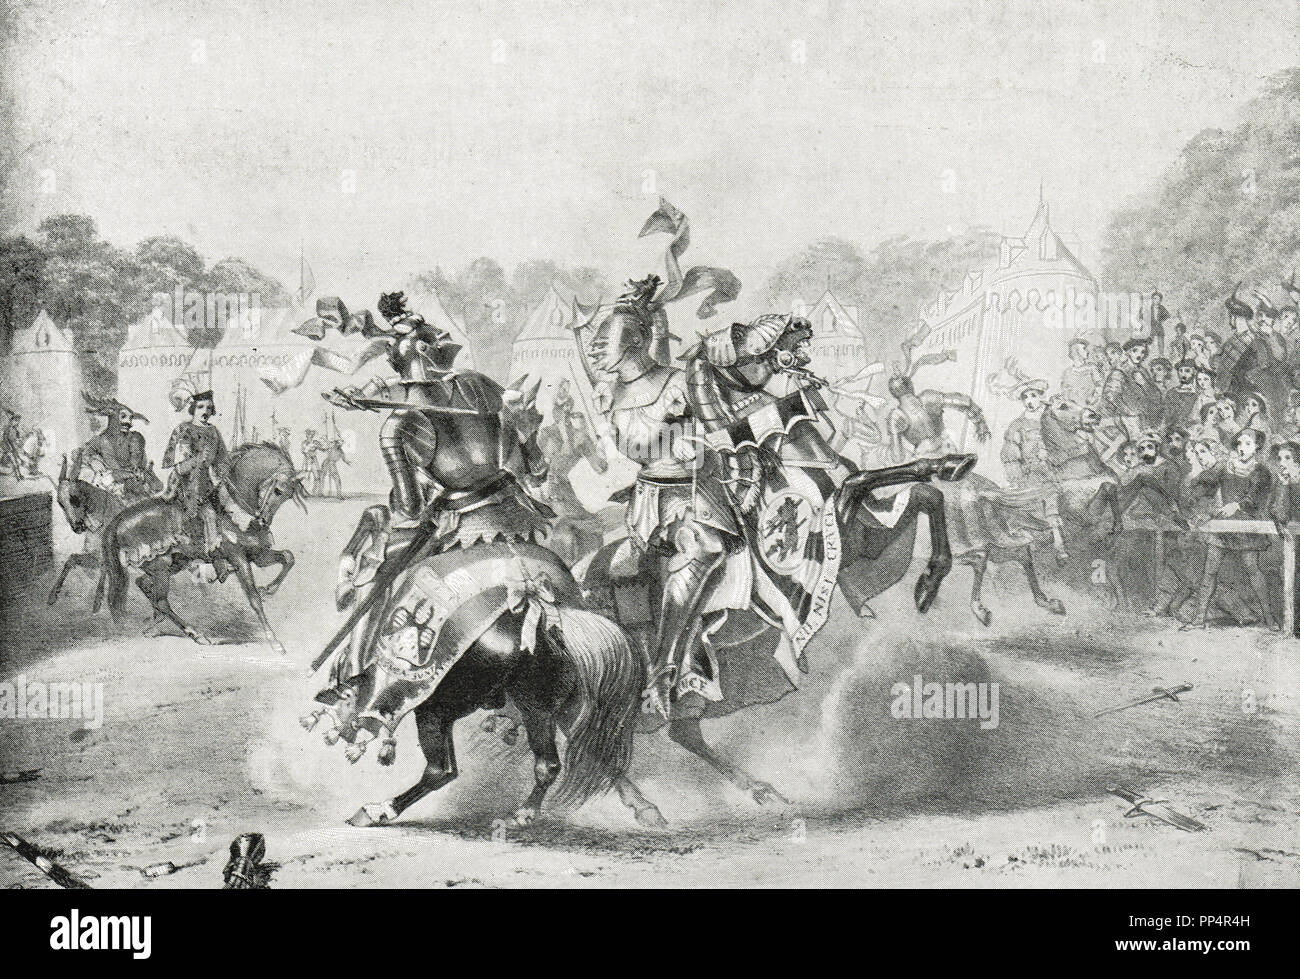 The Eglinton jousting Tournament of  30 August 1839.  A re-enactment of a medieval joust and revel. The joust between Viscount Alford and the Marquess of Waterford, the Knight of the Black Lion versus the Knight of the Dragon - Stock Image